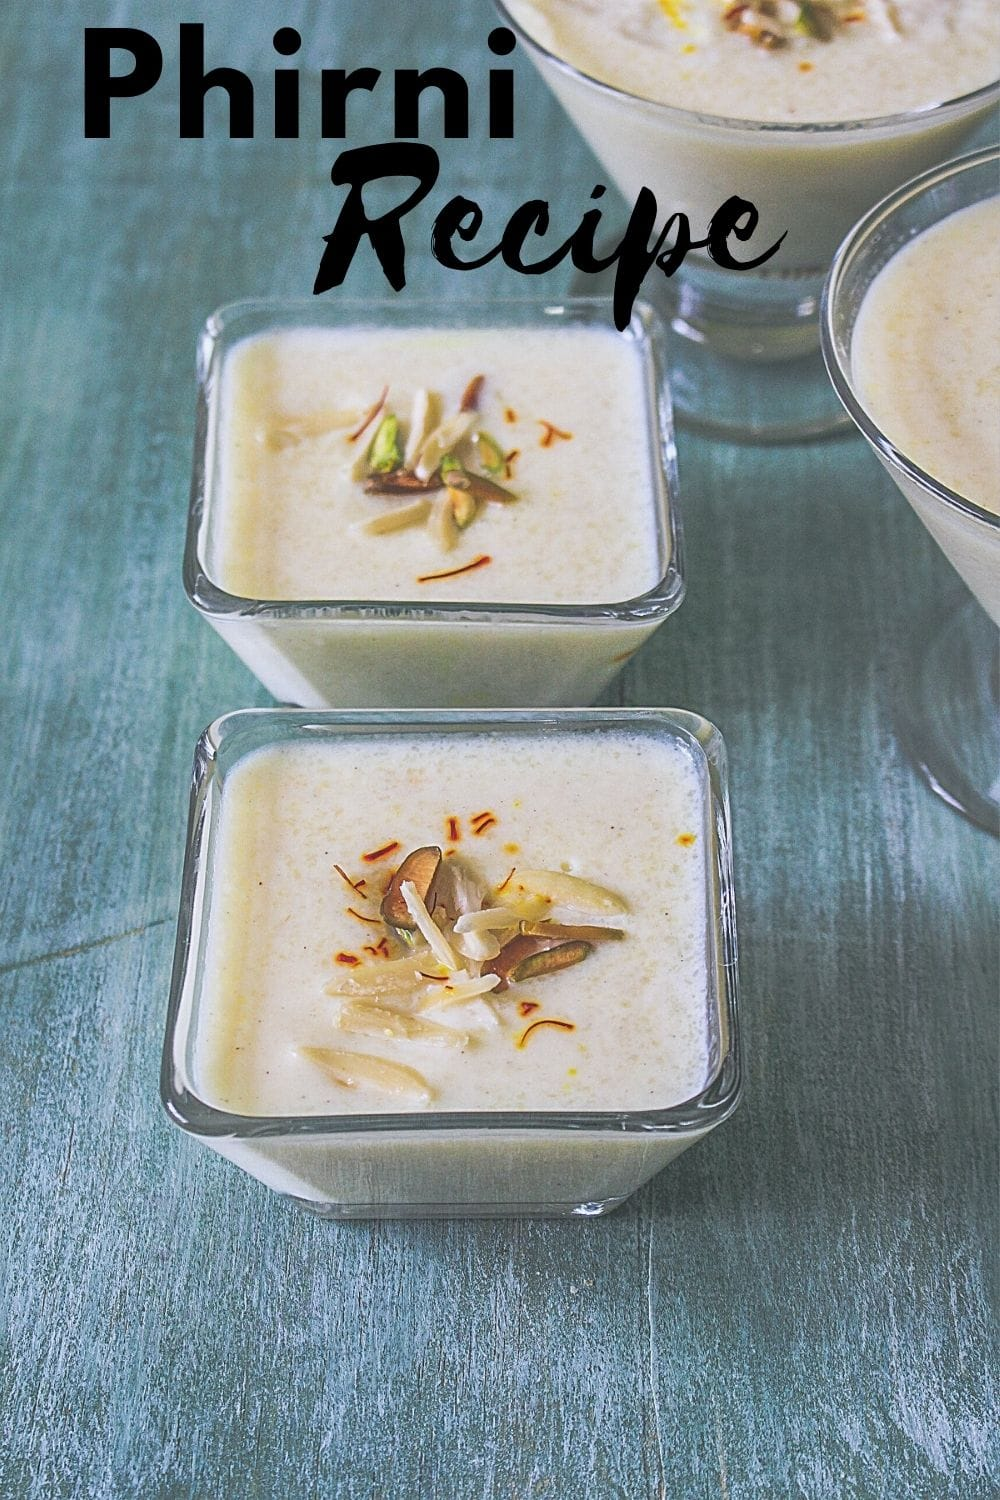 phirni in serving bowls with text on top of the image.